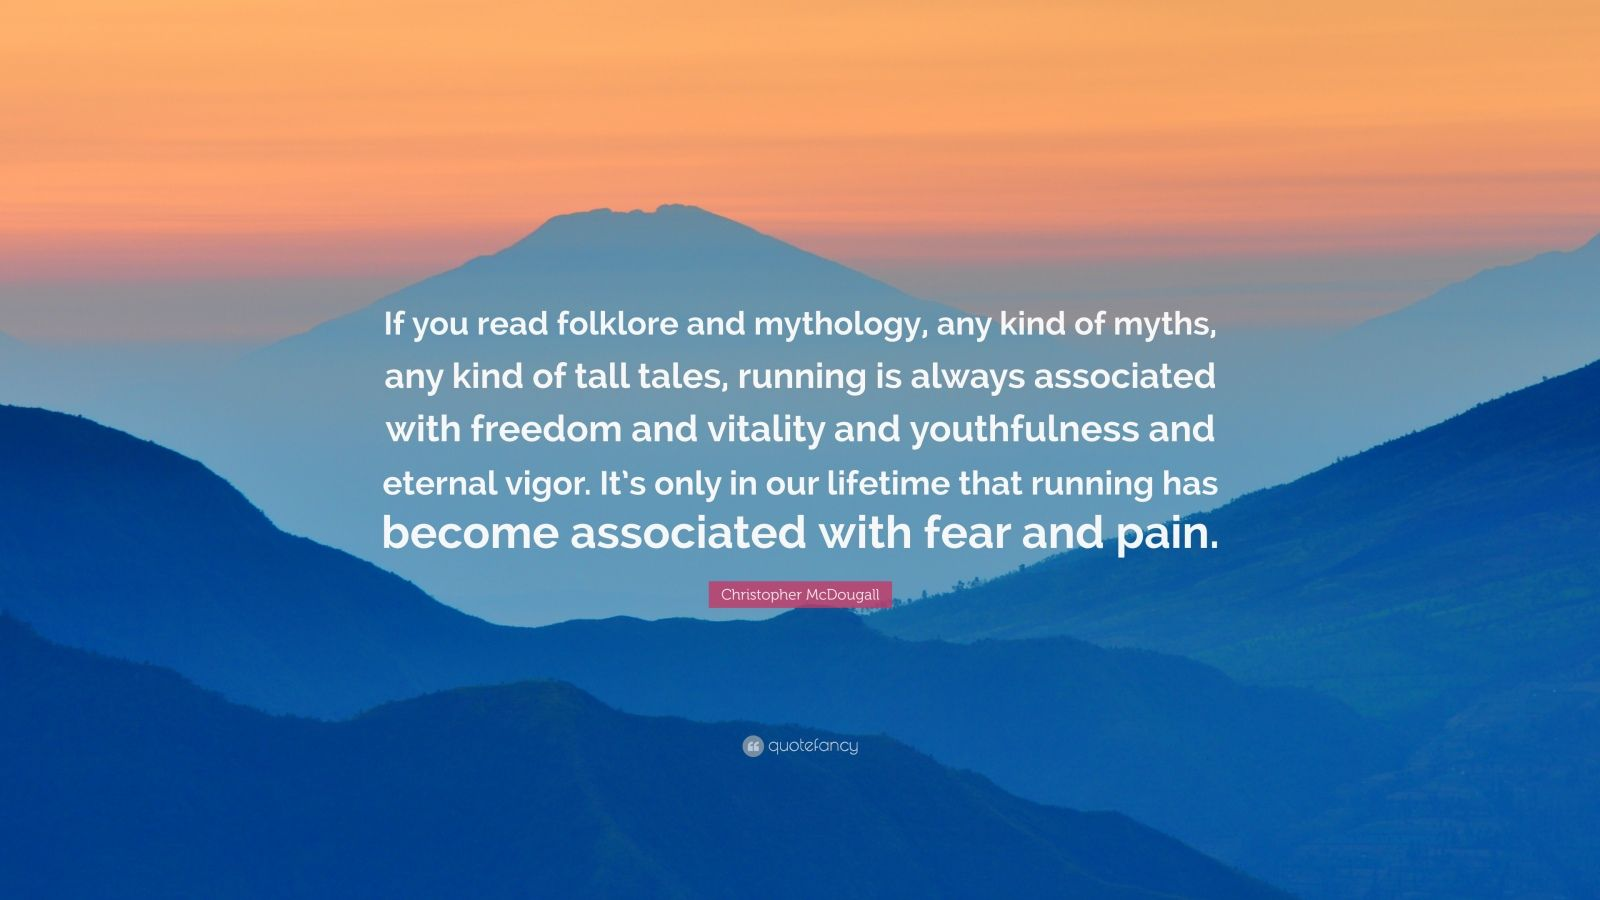 "Christopher McDougall Quote: ""If you read folklore and mythology, any kind of myths, any kind of tall tales, running is always associated with freedom and vitality and youthfulness and eternal vigor. It's only in our lifetime that running has become associated with fear and pain."""